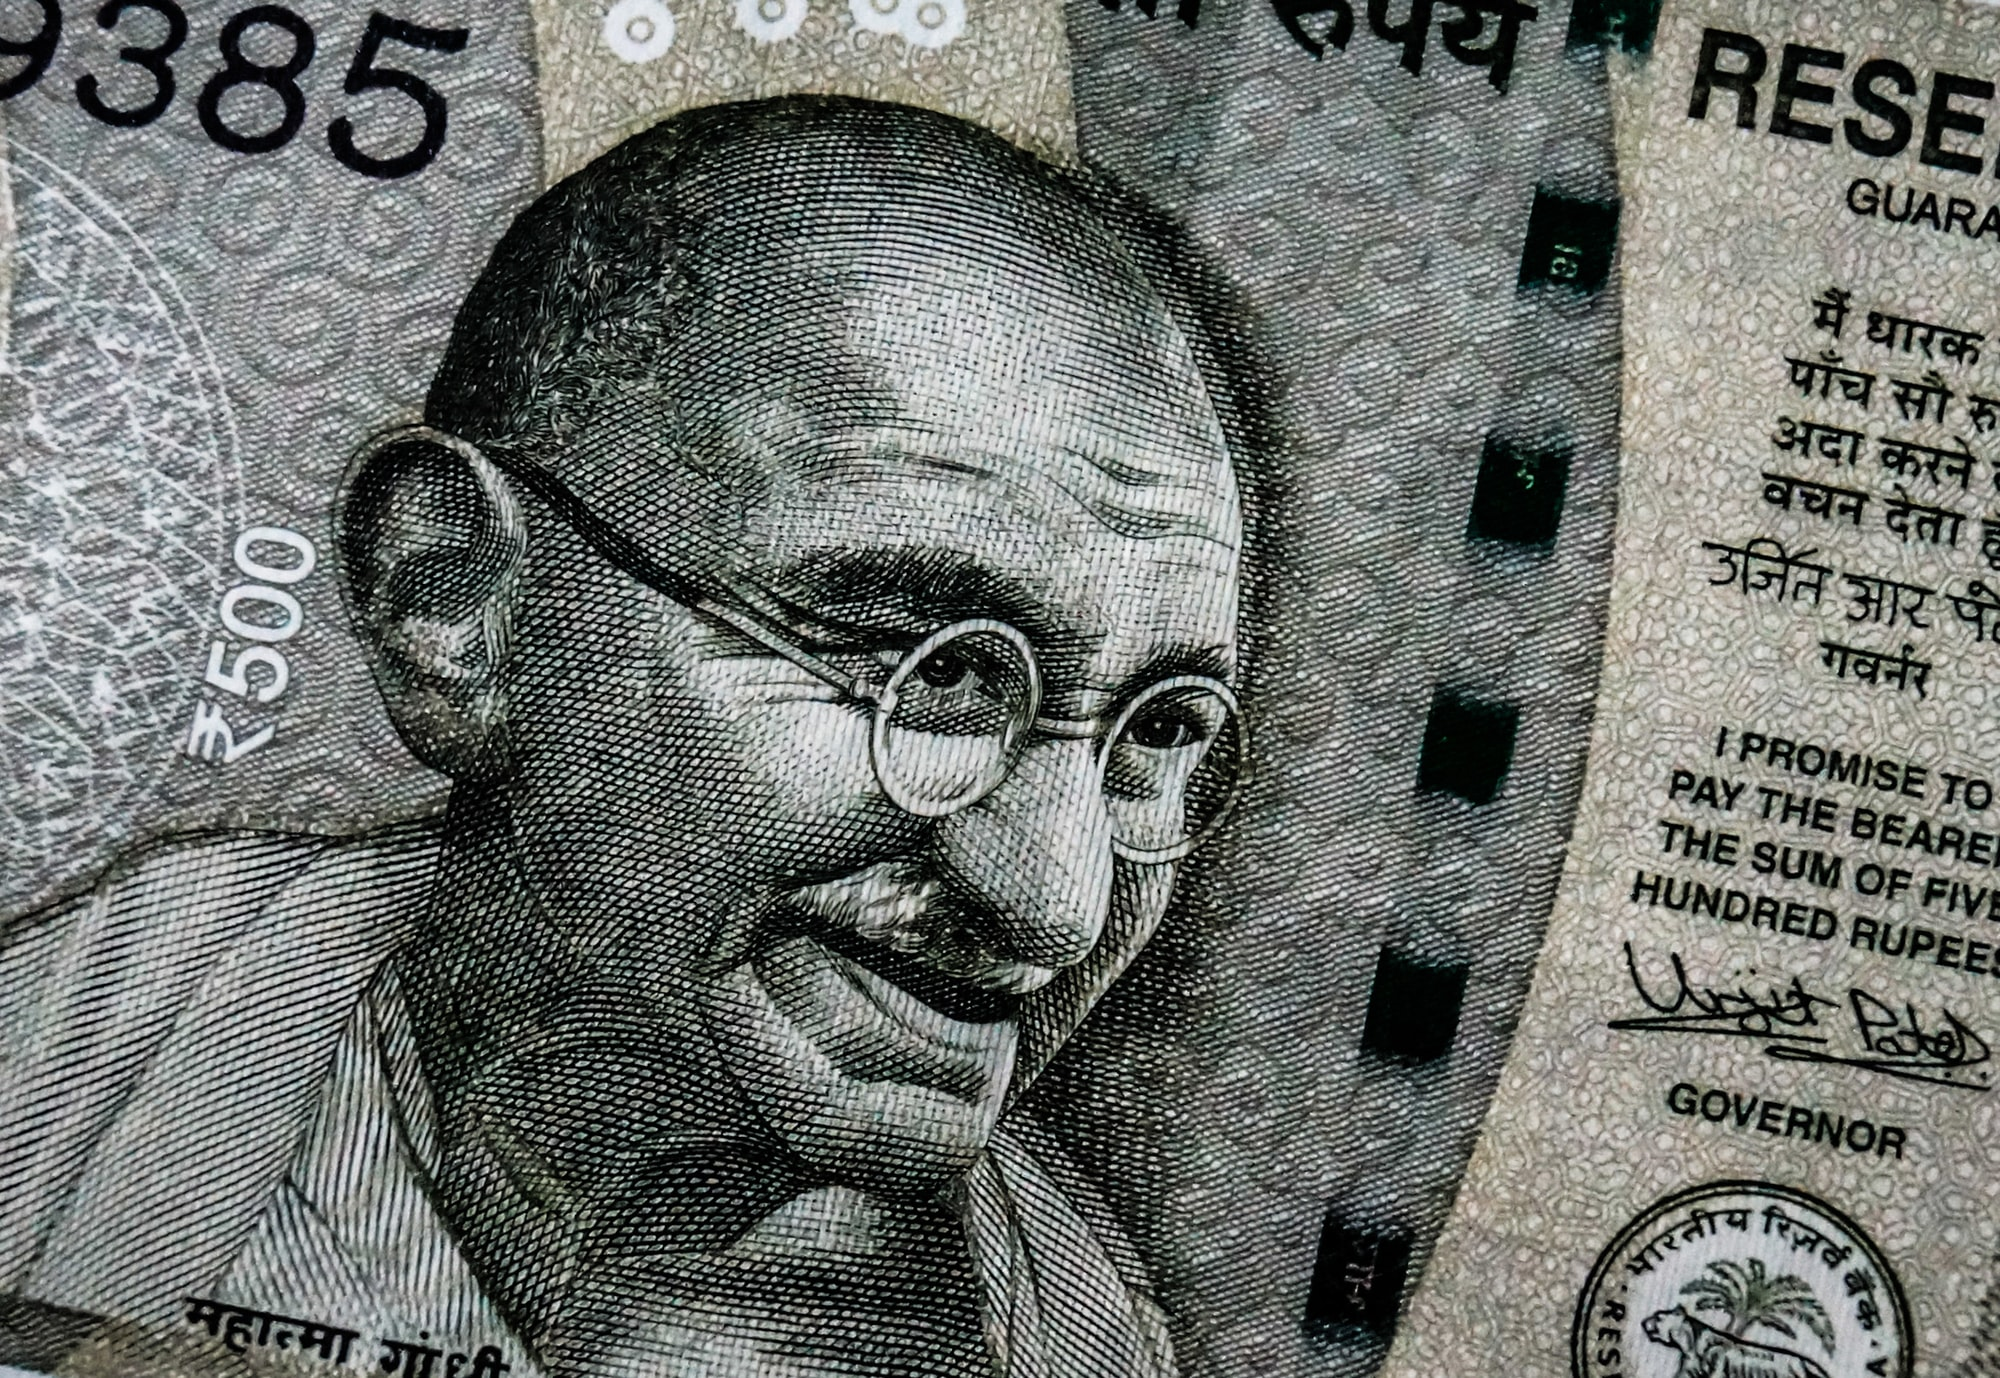 Mahatma Gandhi(Father of the Nation)